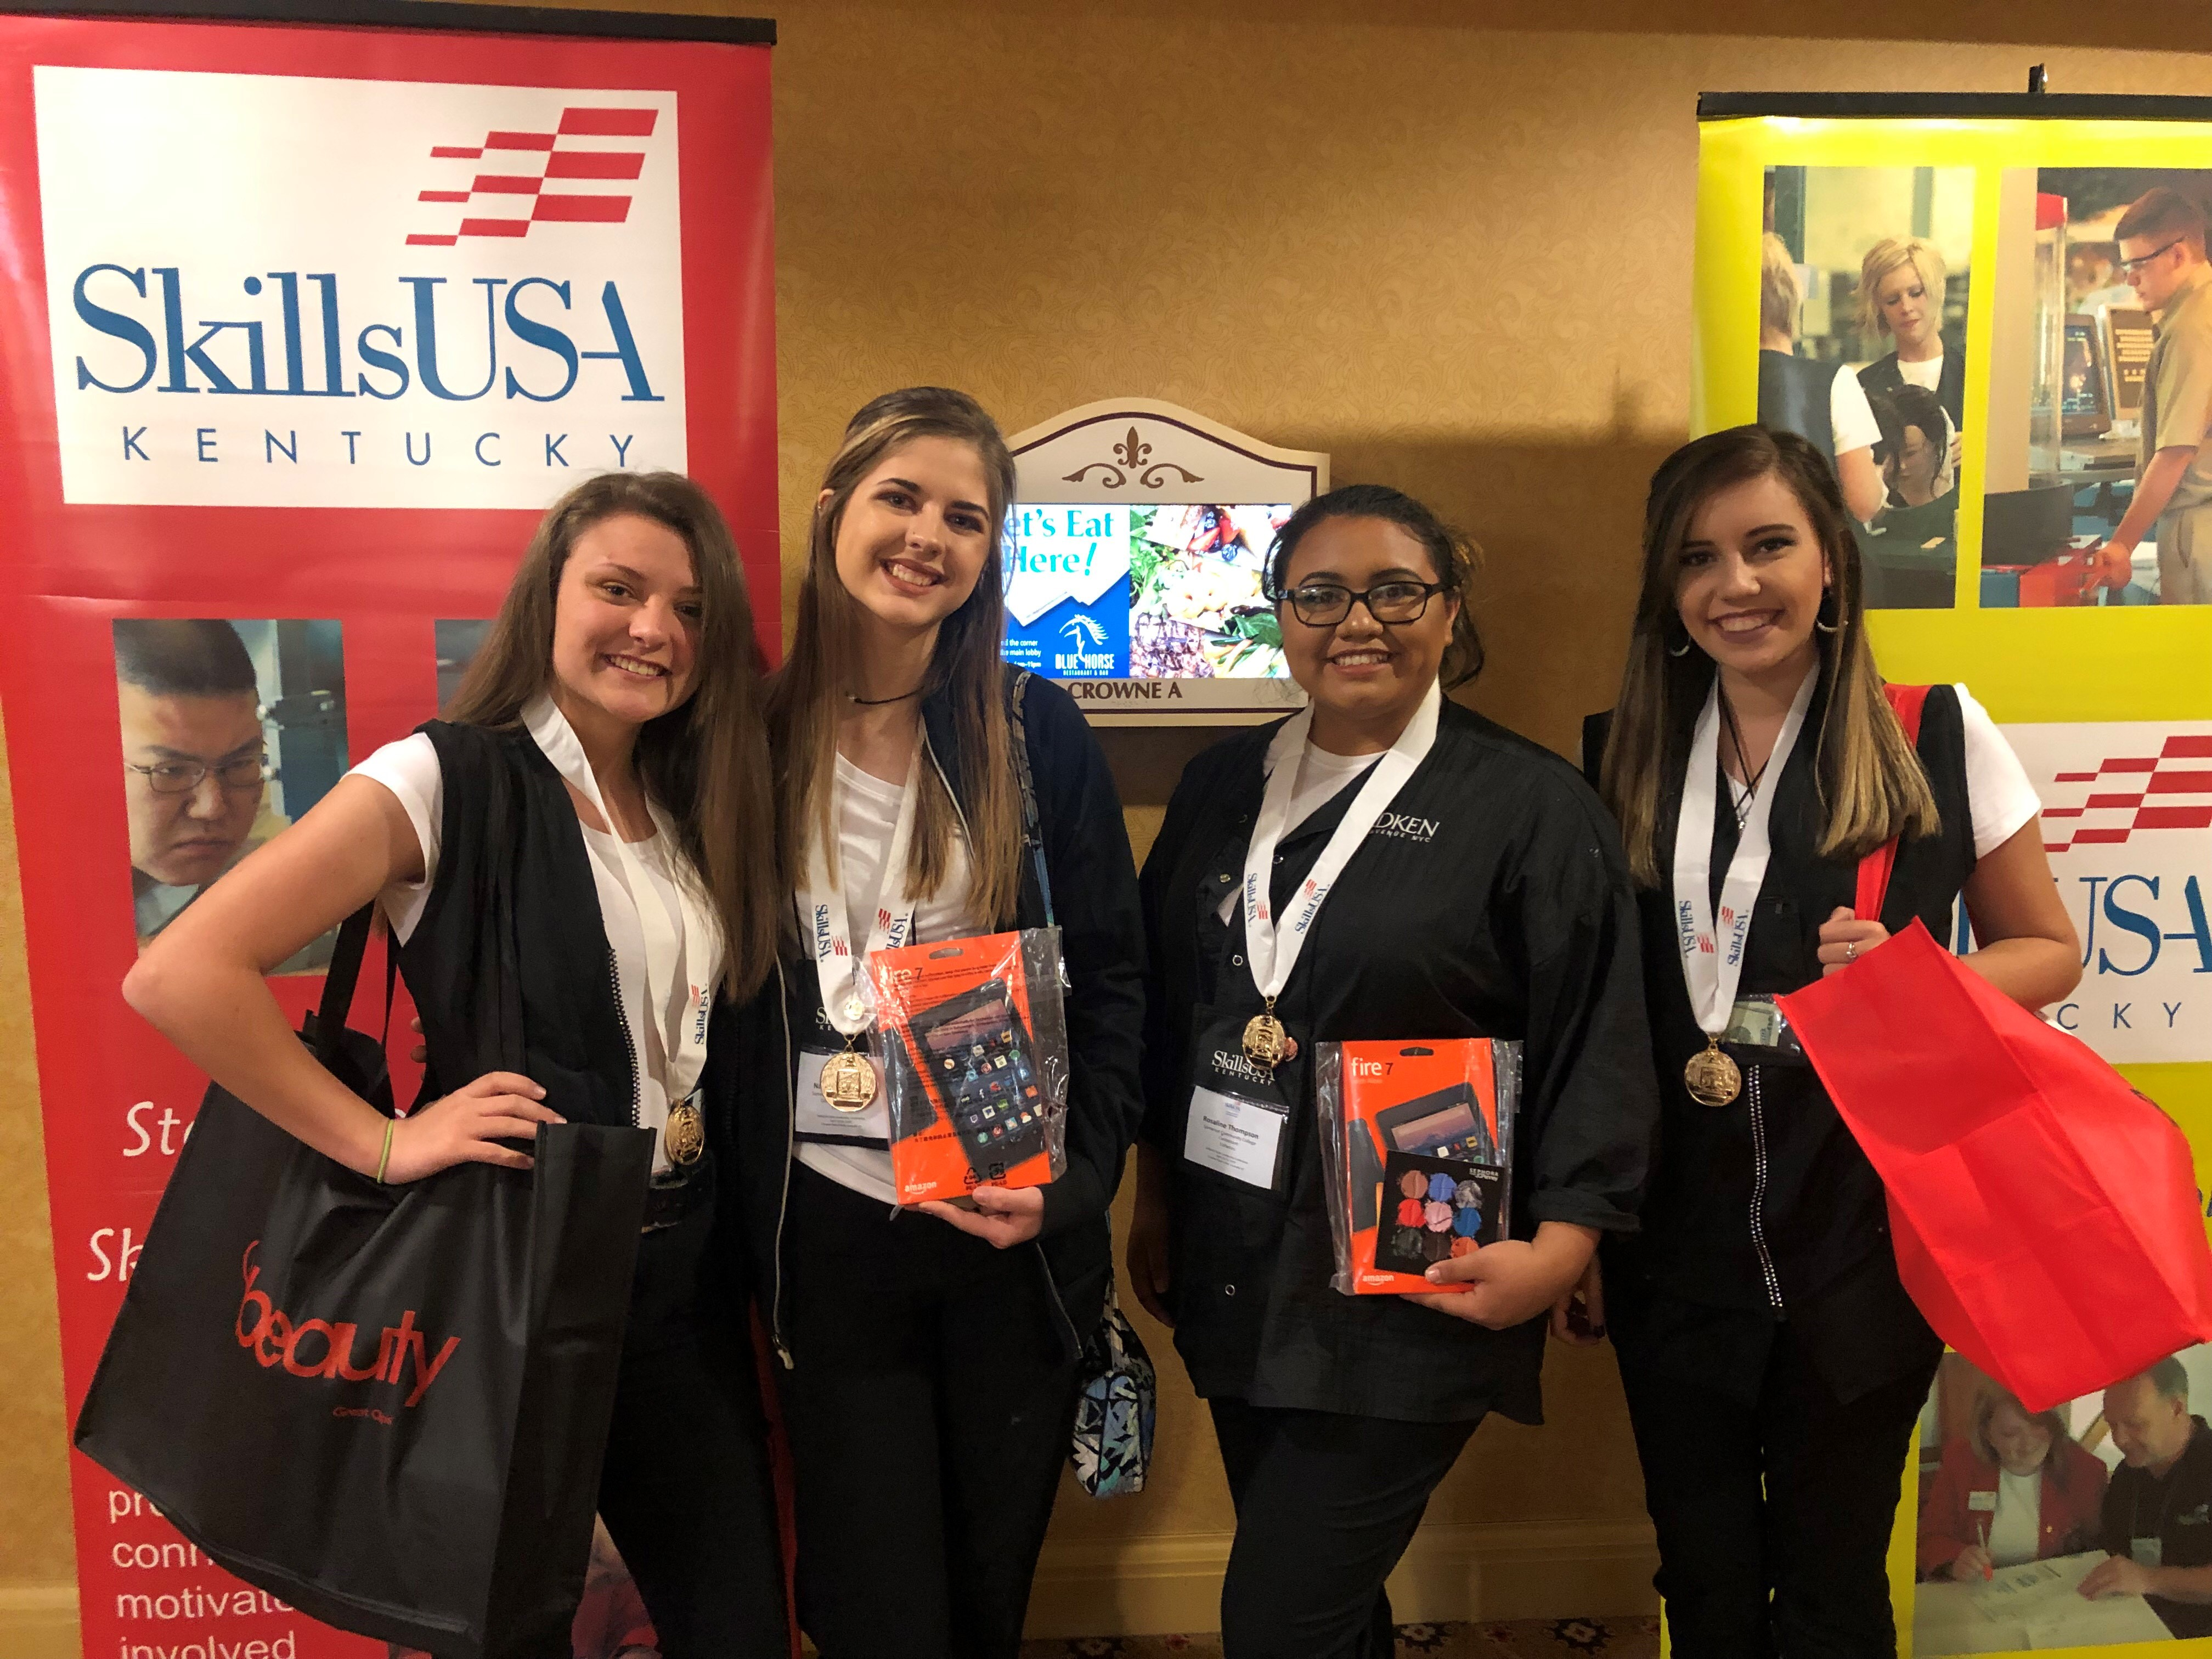 Students from the Somerset Community College Cosmetology program at Southern Kentucky Early College & Career Academy competed at event, bringing home first place in three events!